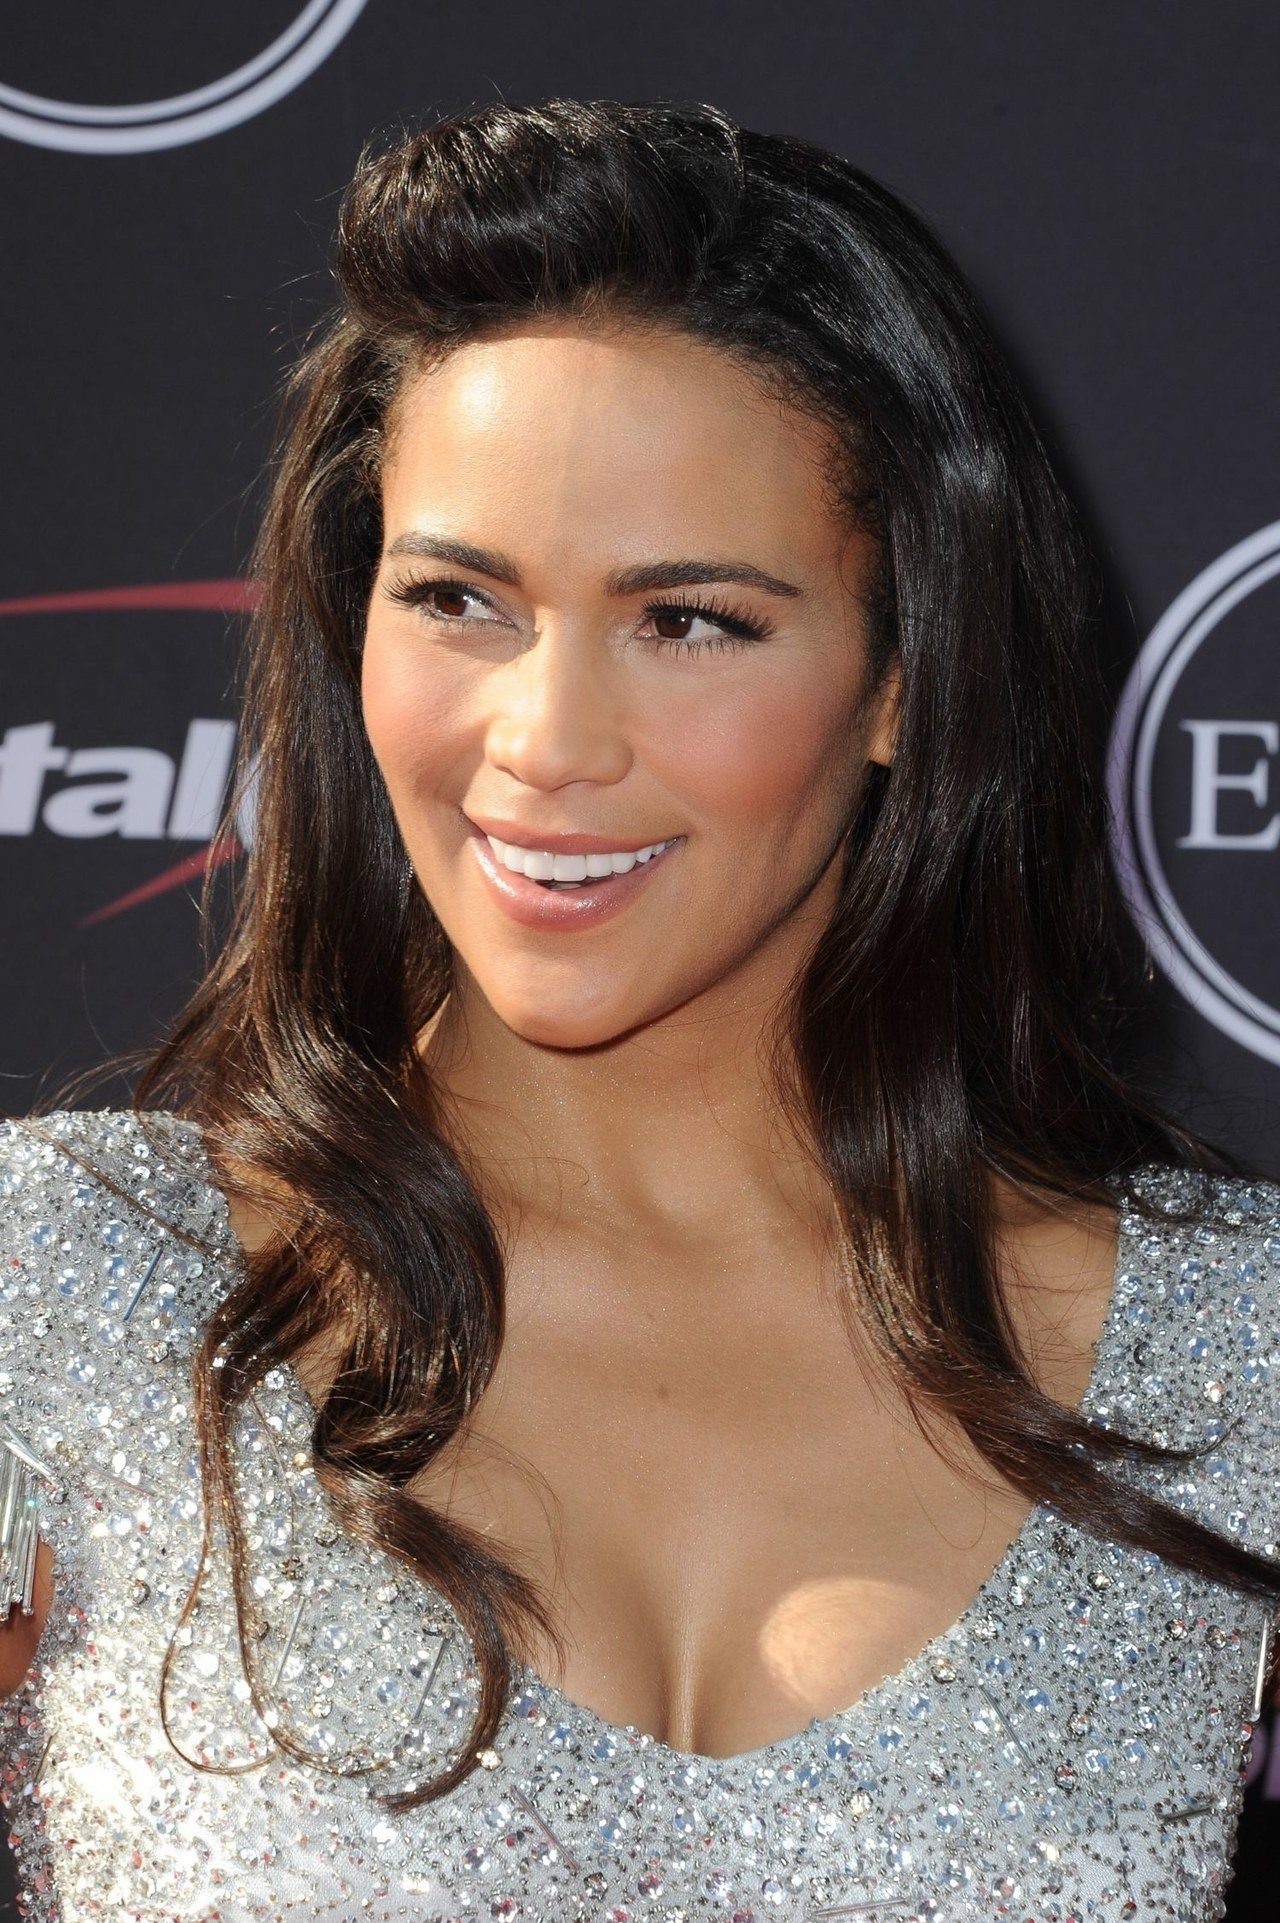 The Best Hey Hey Hey Check Out Paula Patton S 4 Cutest Hairstyle Ideas Of The Summer You Know You Want Pictures